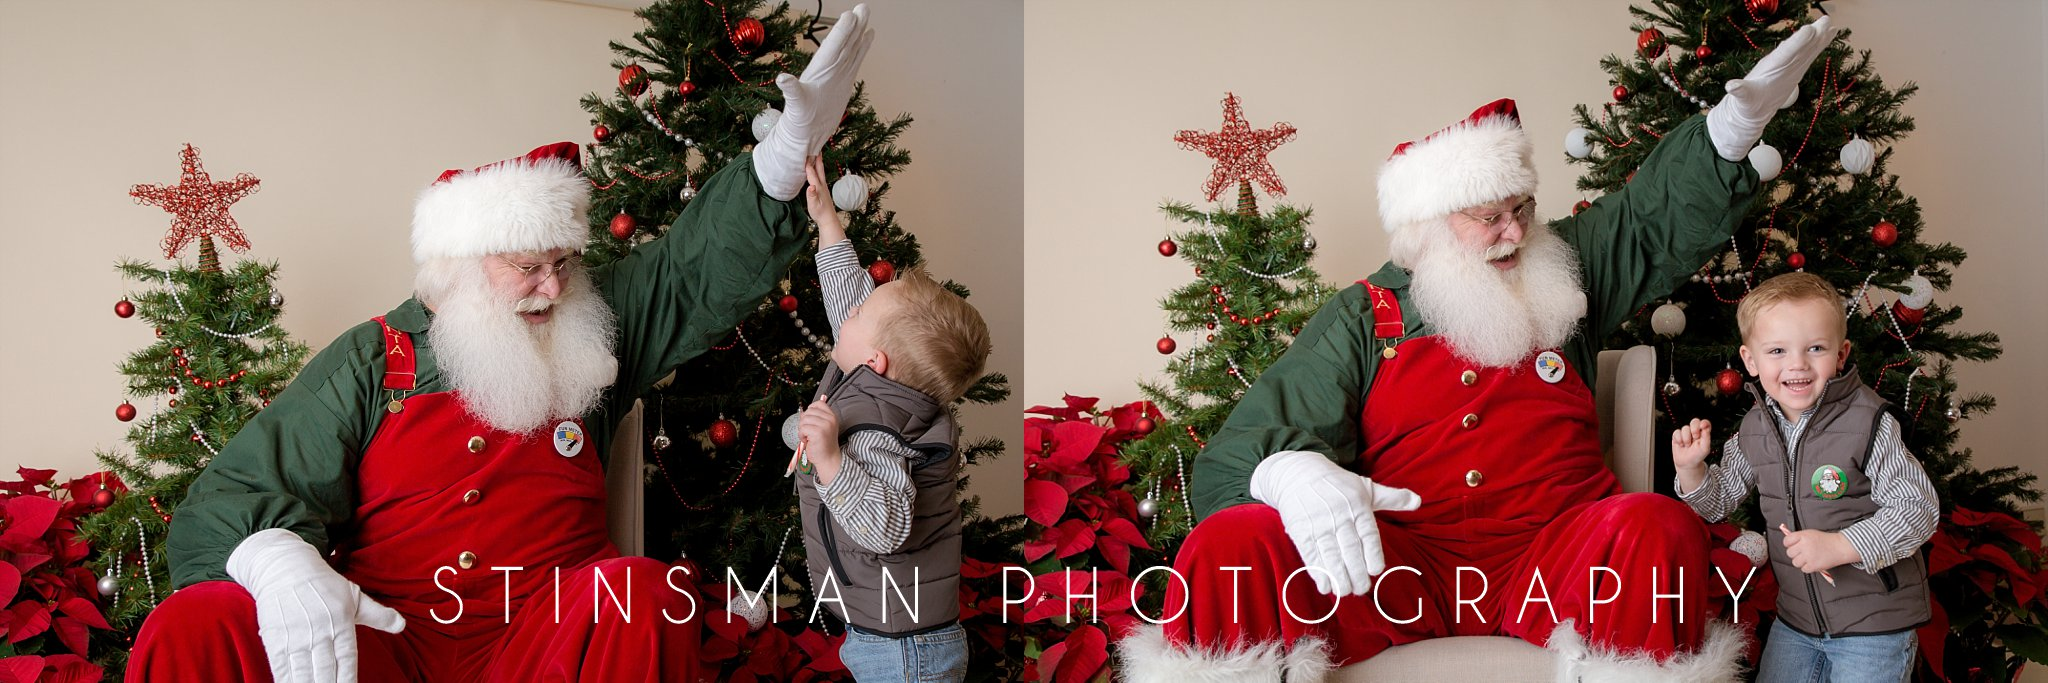 santa giving a high five to a young boy south jersey photographer